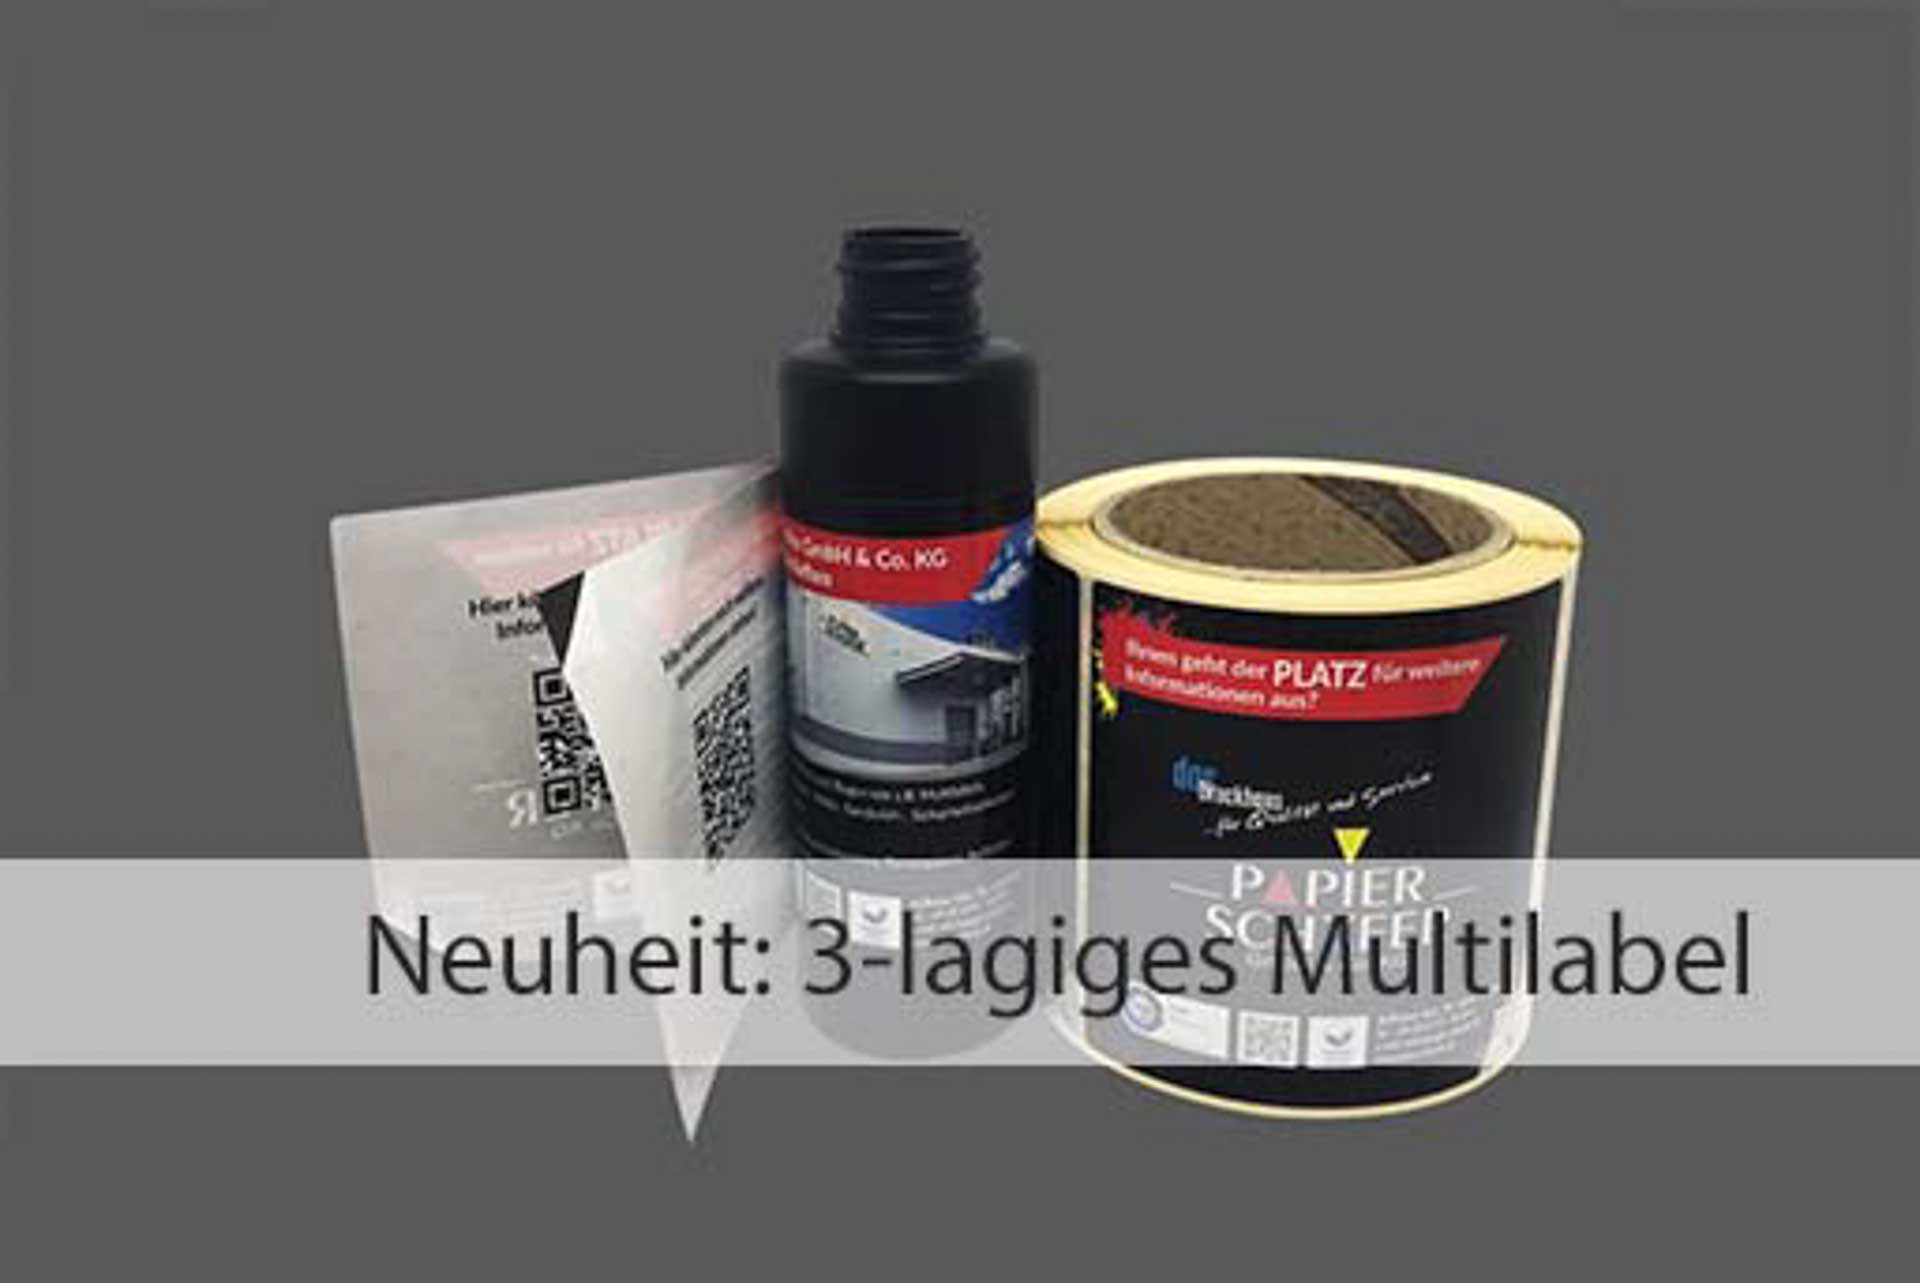 3-lagiges Multilabel | PApier-Schäfer GmbH & Co. KG